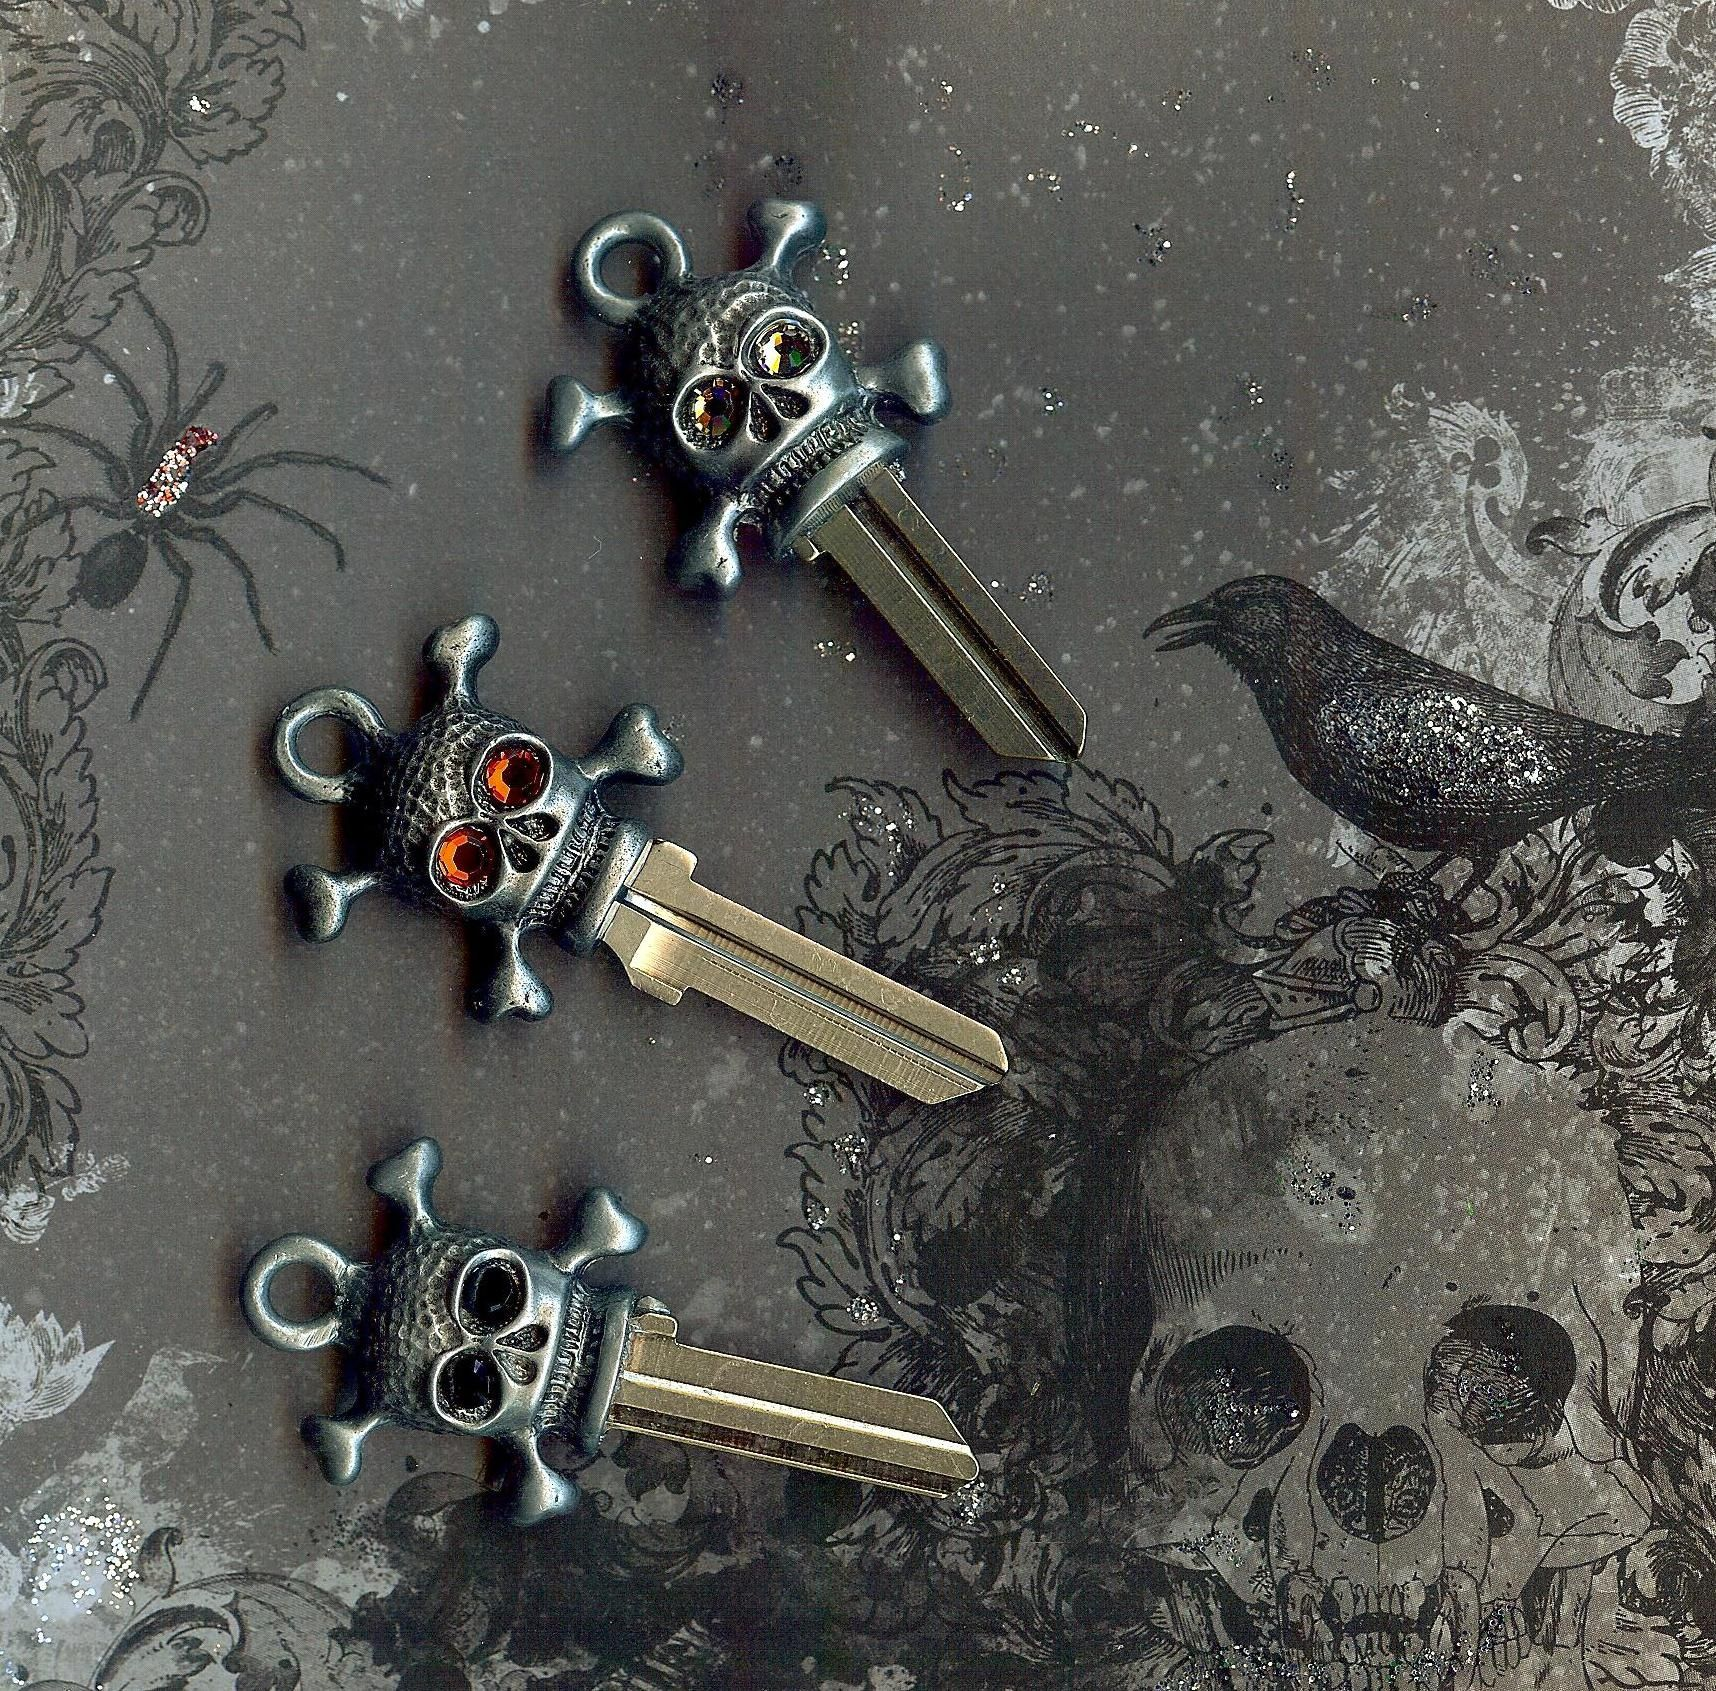 The Key Is Picking Just The Right Skull To Unlock Your Door Designer Key Blanks Couture Keys By Keystomycastle Key Design Key Blanks Key